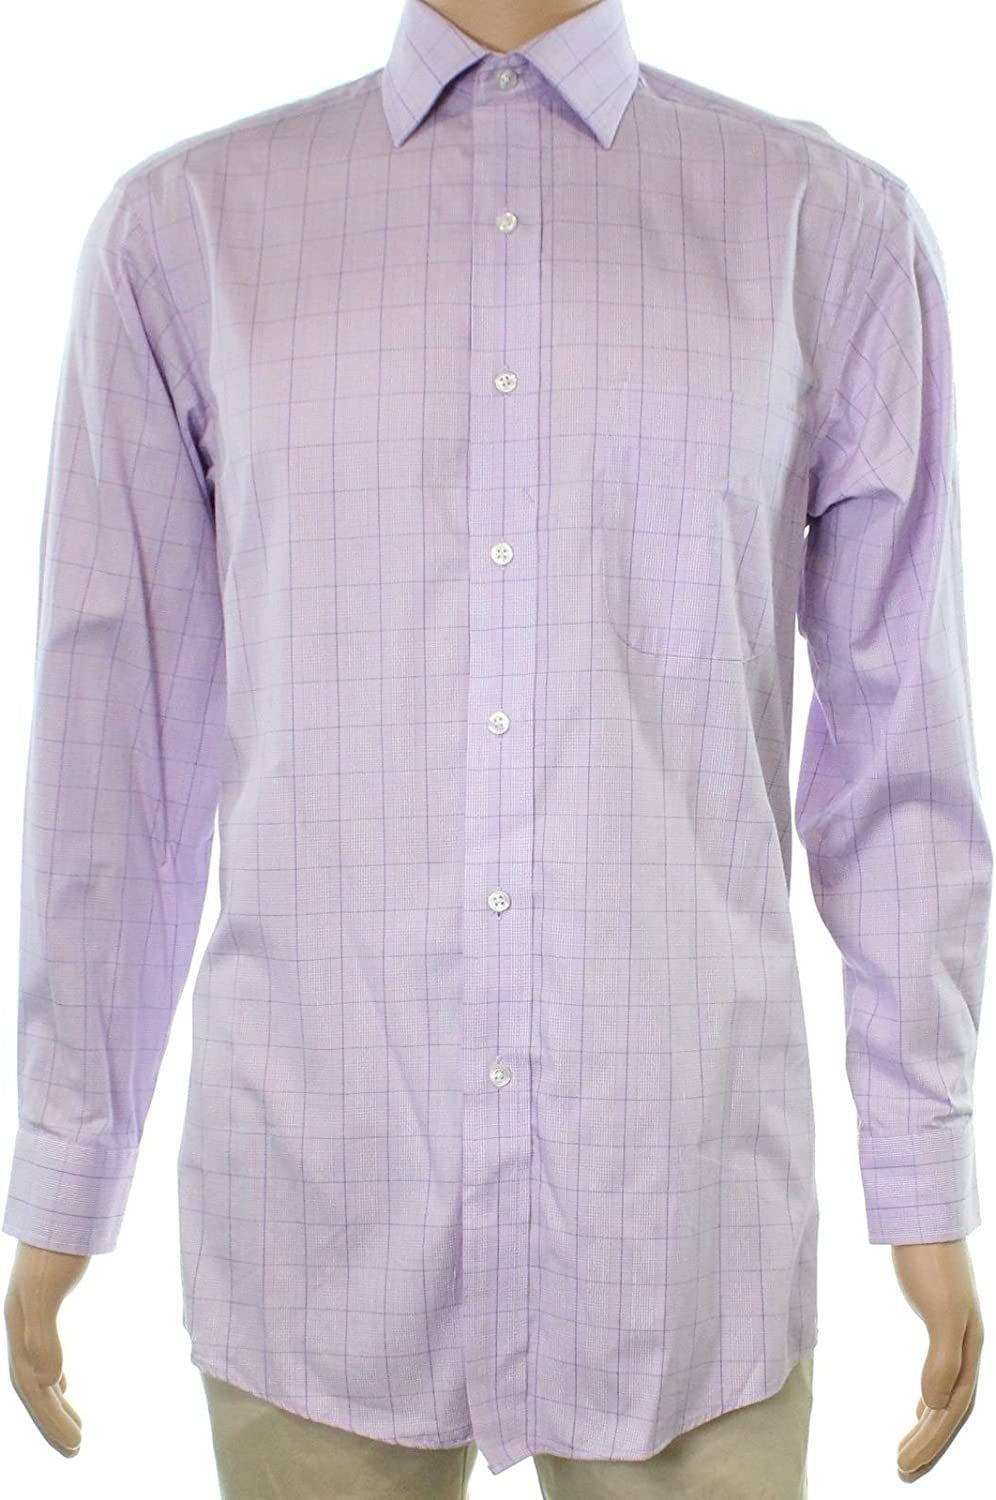 Spring new work one after another Club Room Men's Wrinkle Resistant Courier shipping free shipping Shirt Glenplaid Dress Lavender